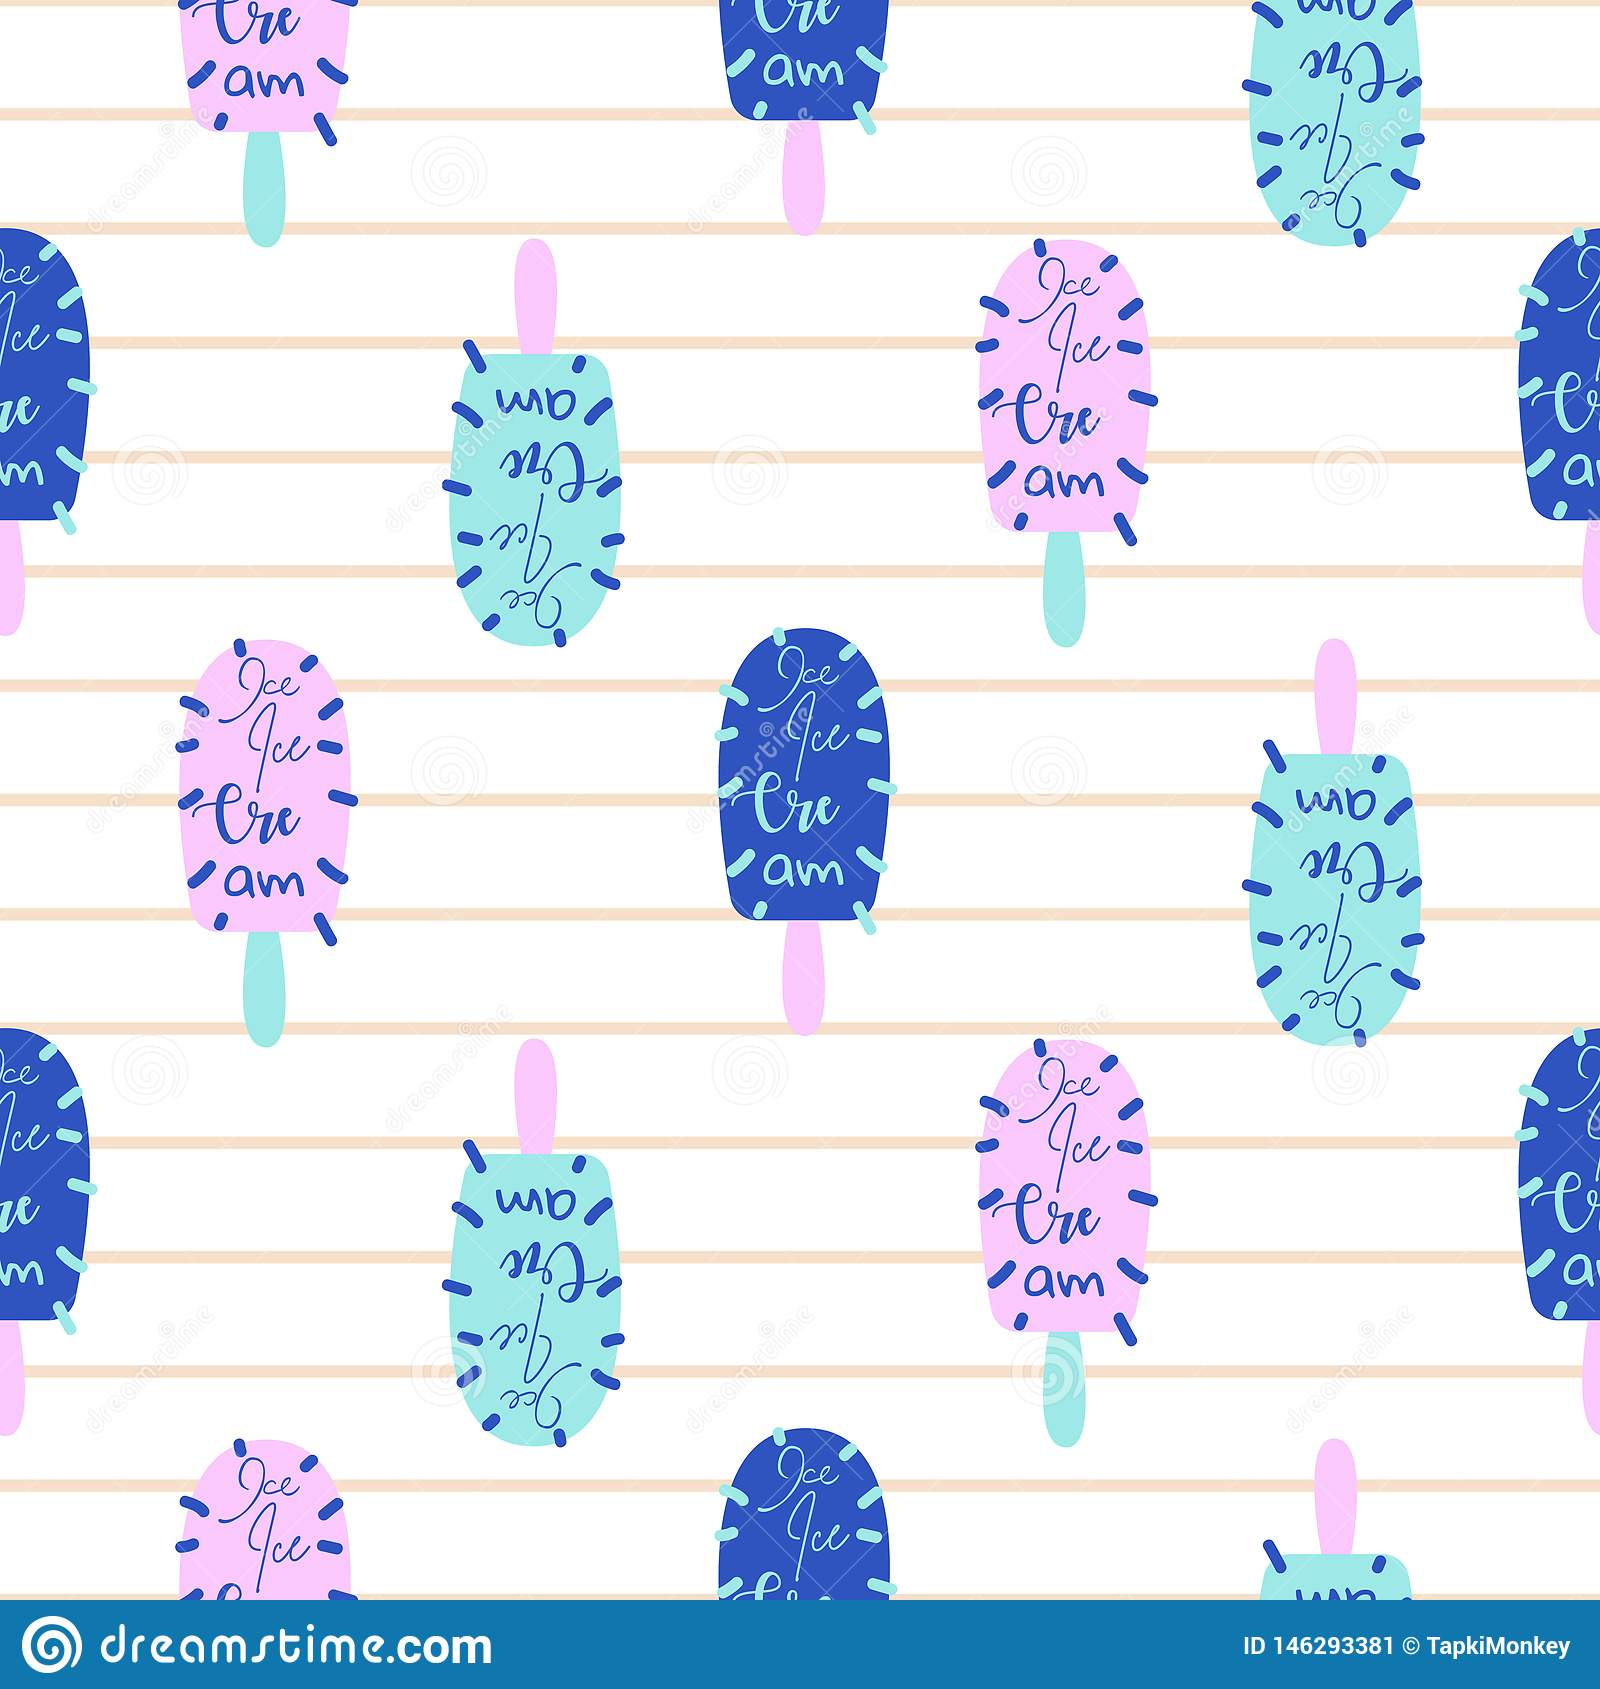 Popsicle fun bright seamless pattern vector. Ice cream pop art blue and pink background.